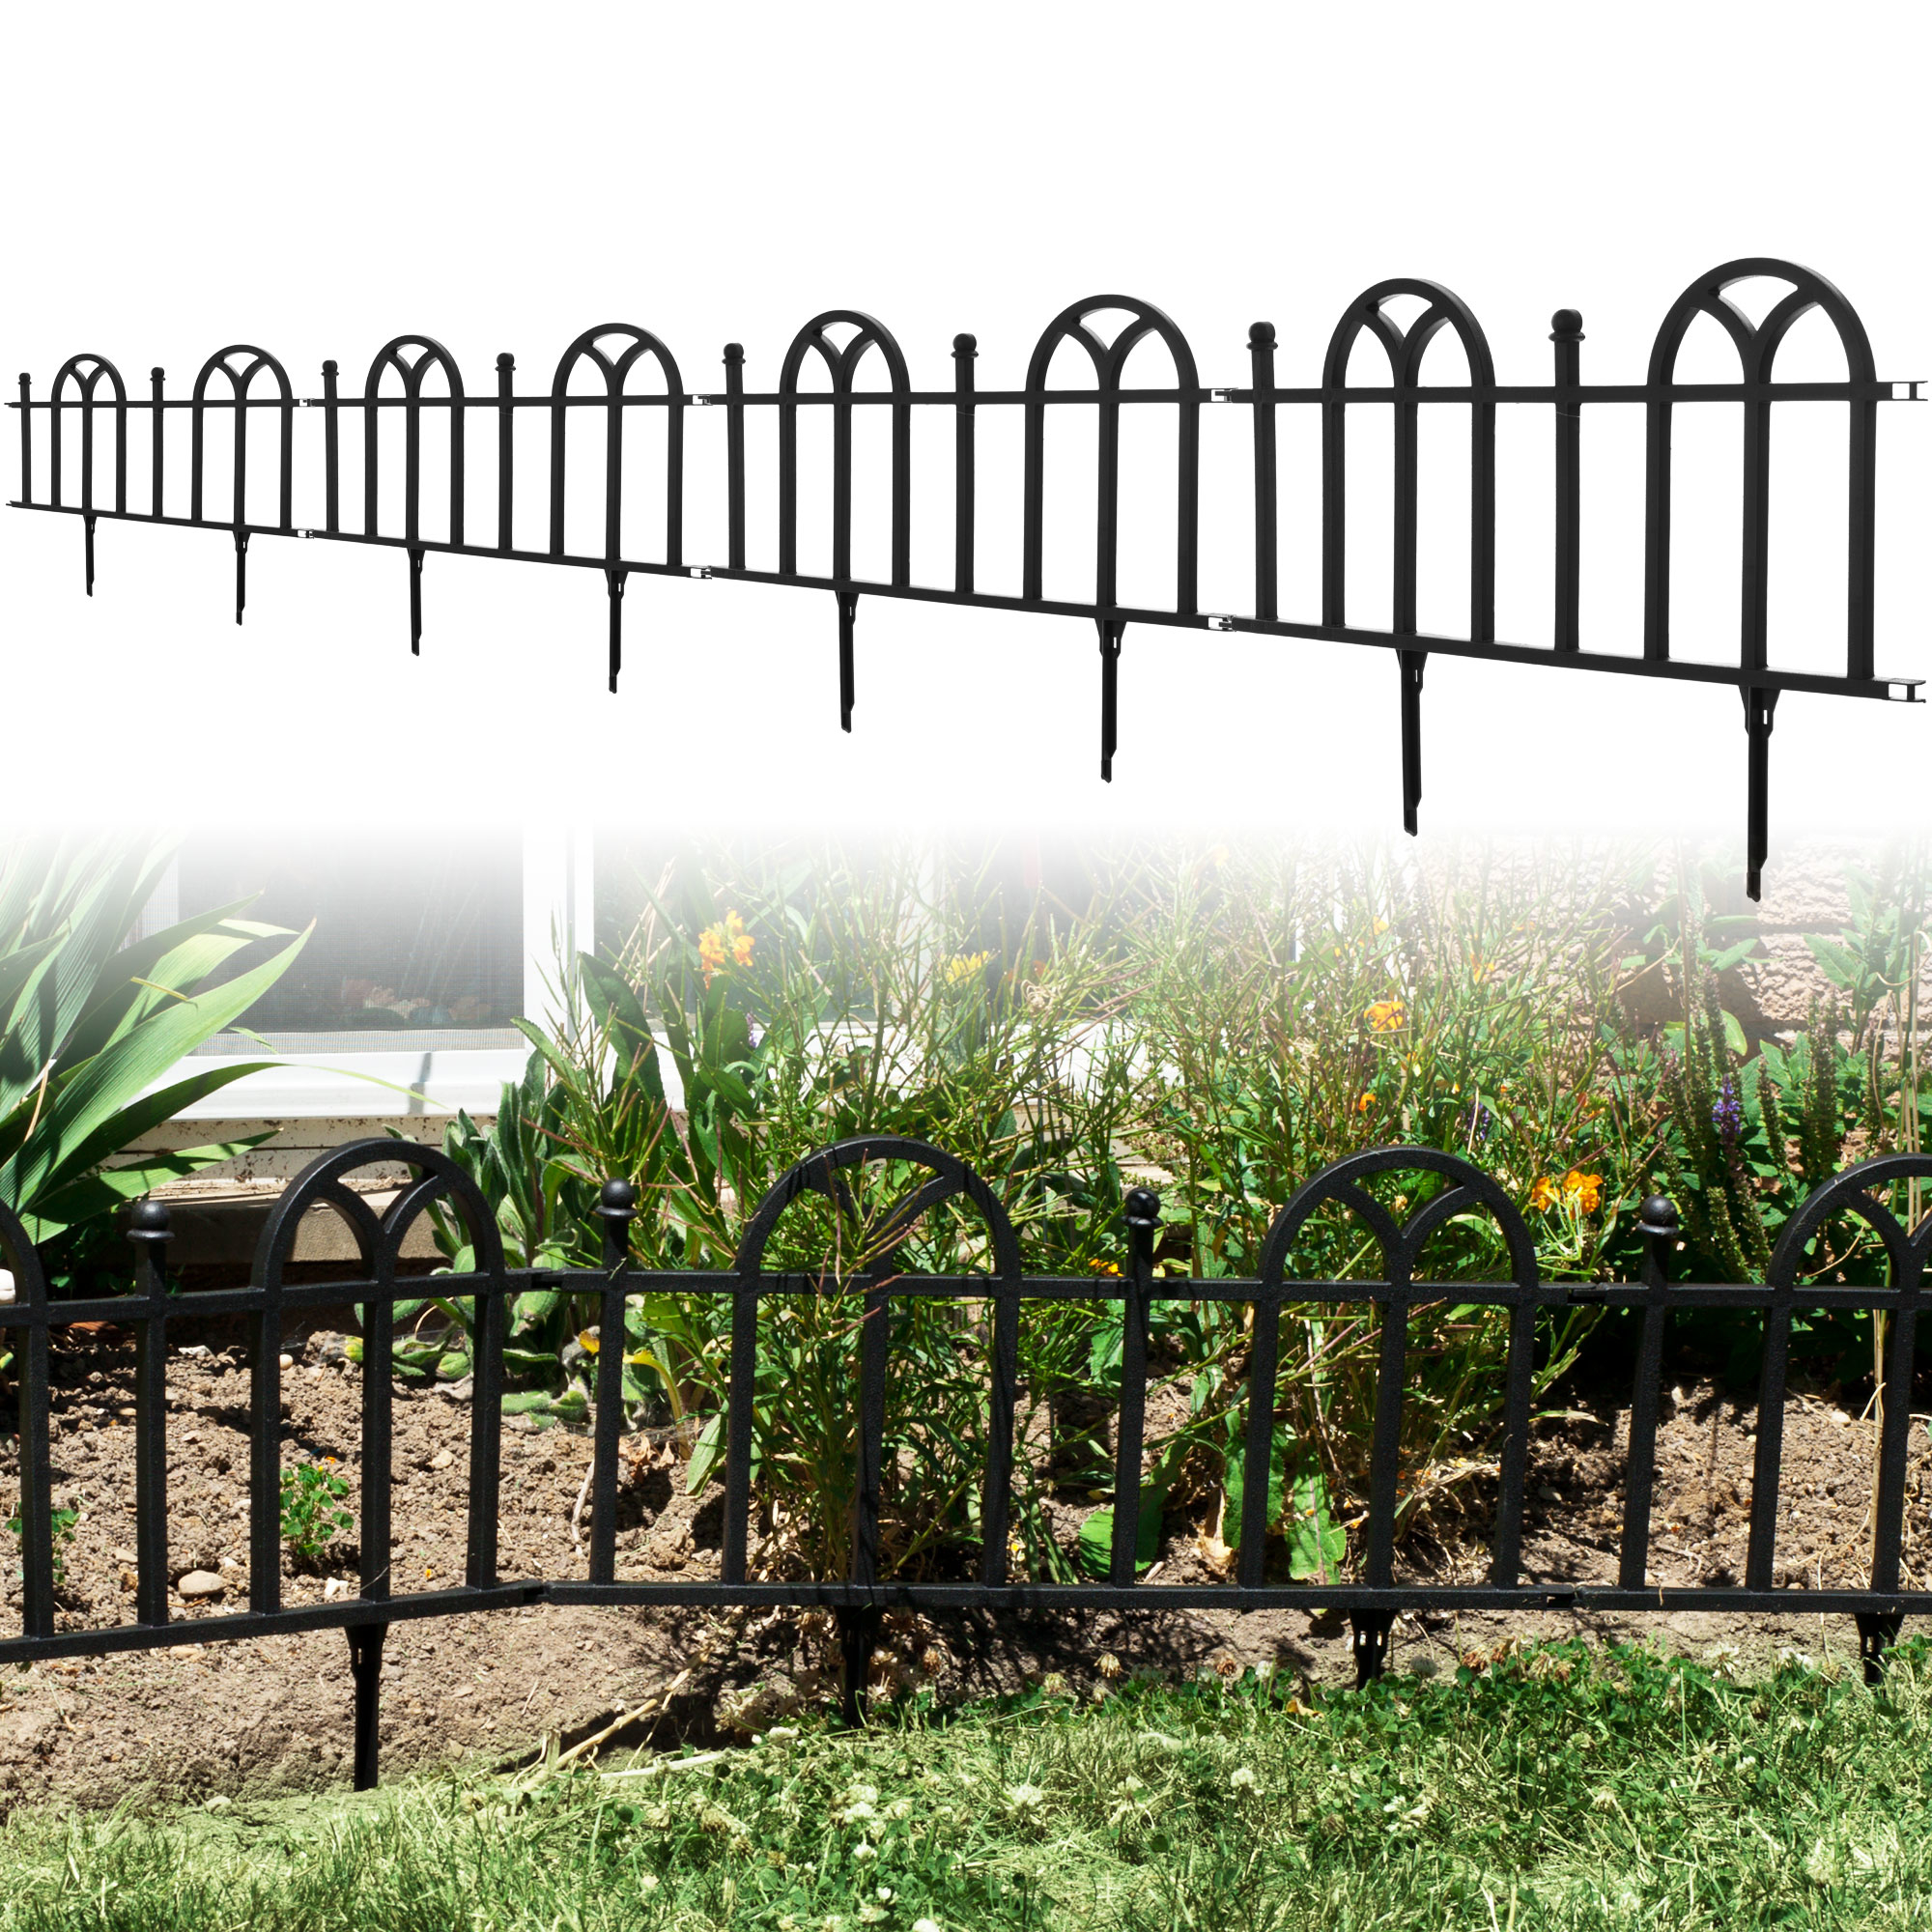 Victorian Garden Border Fencing Set by Pure Garden